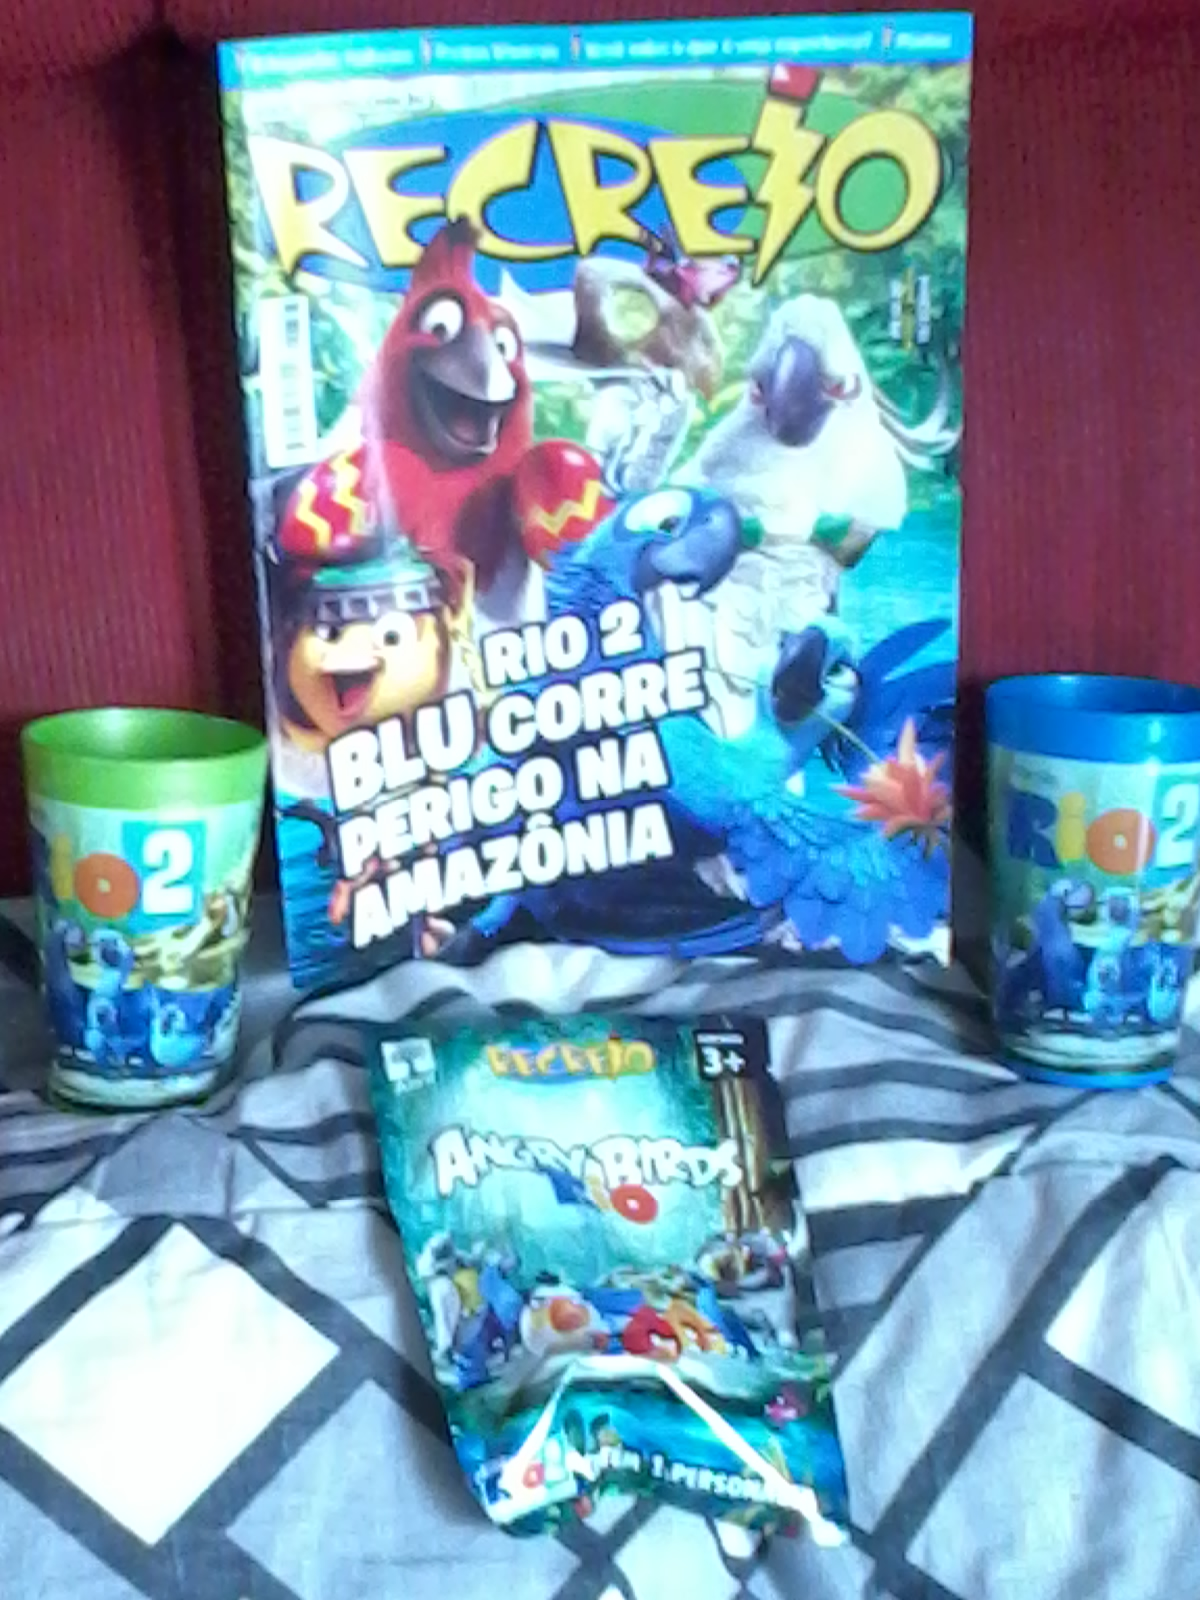 DisneyForever/Review of Recreio Magazine with special content from Rio 2